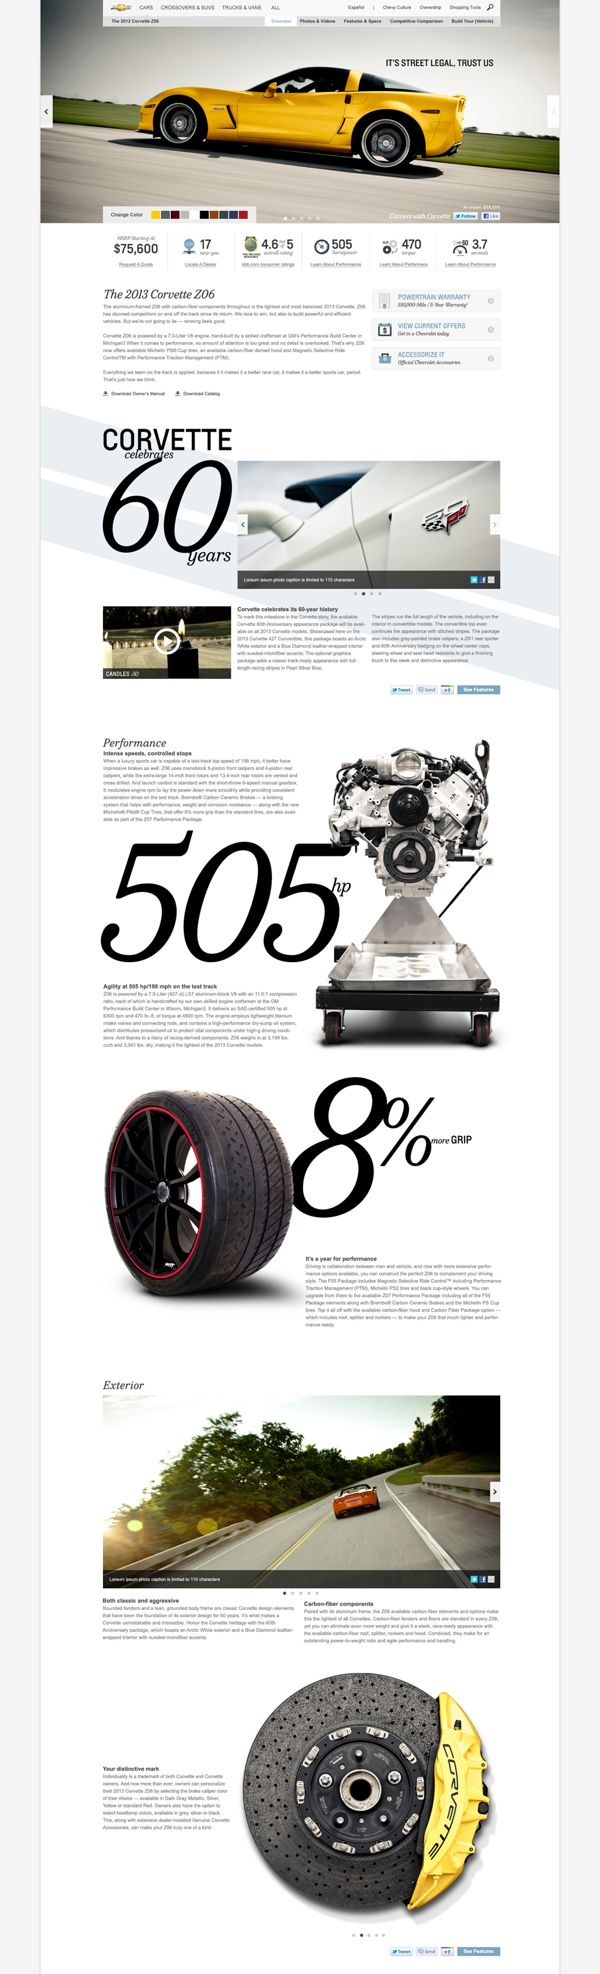 Cool Automotive Web Design. Chevrolet. #automotive #webdesign [http://www.pinterest.com/alfredchong/]